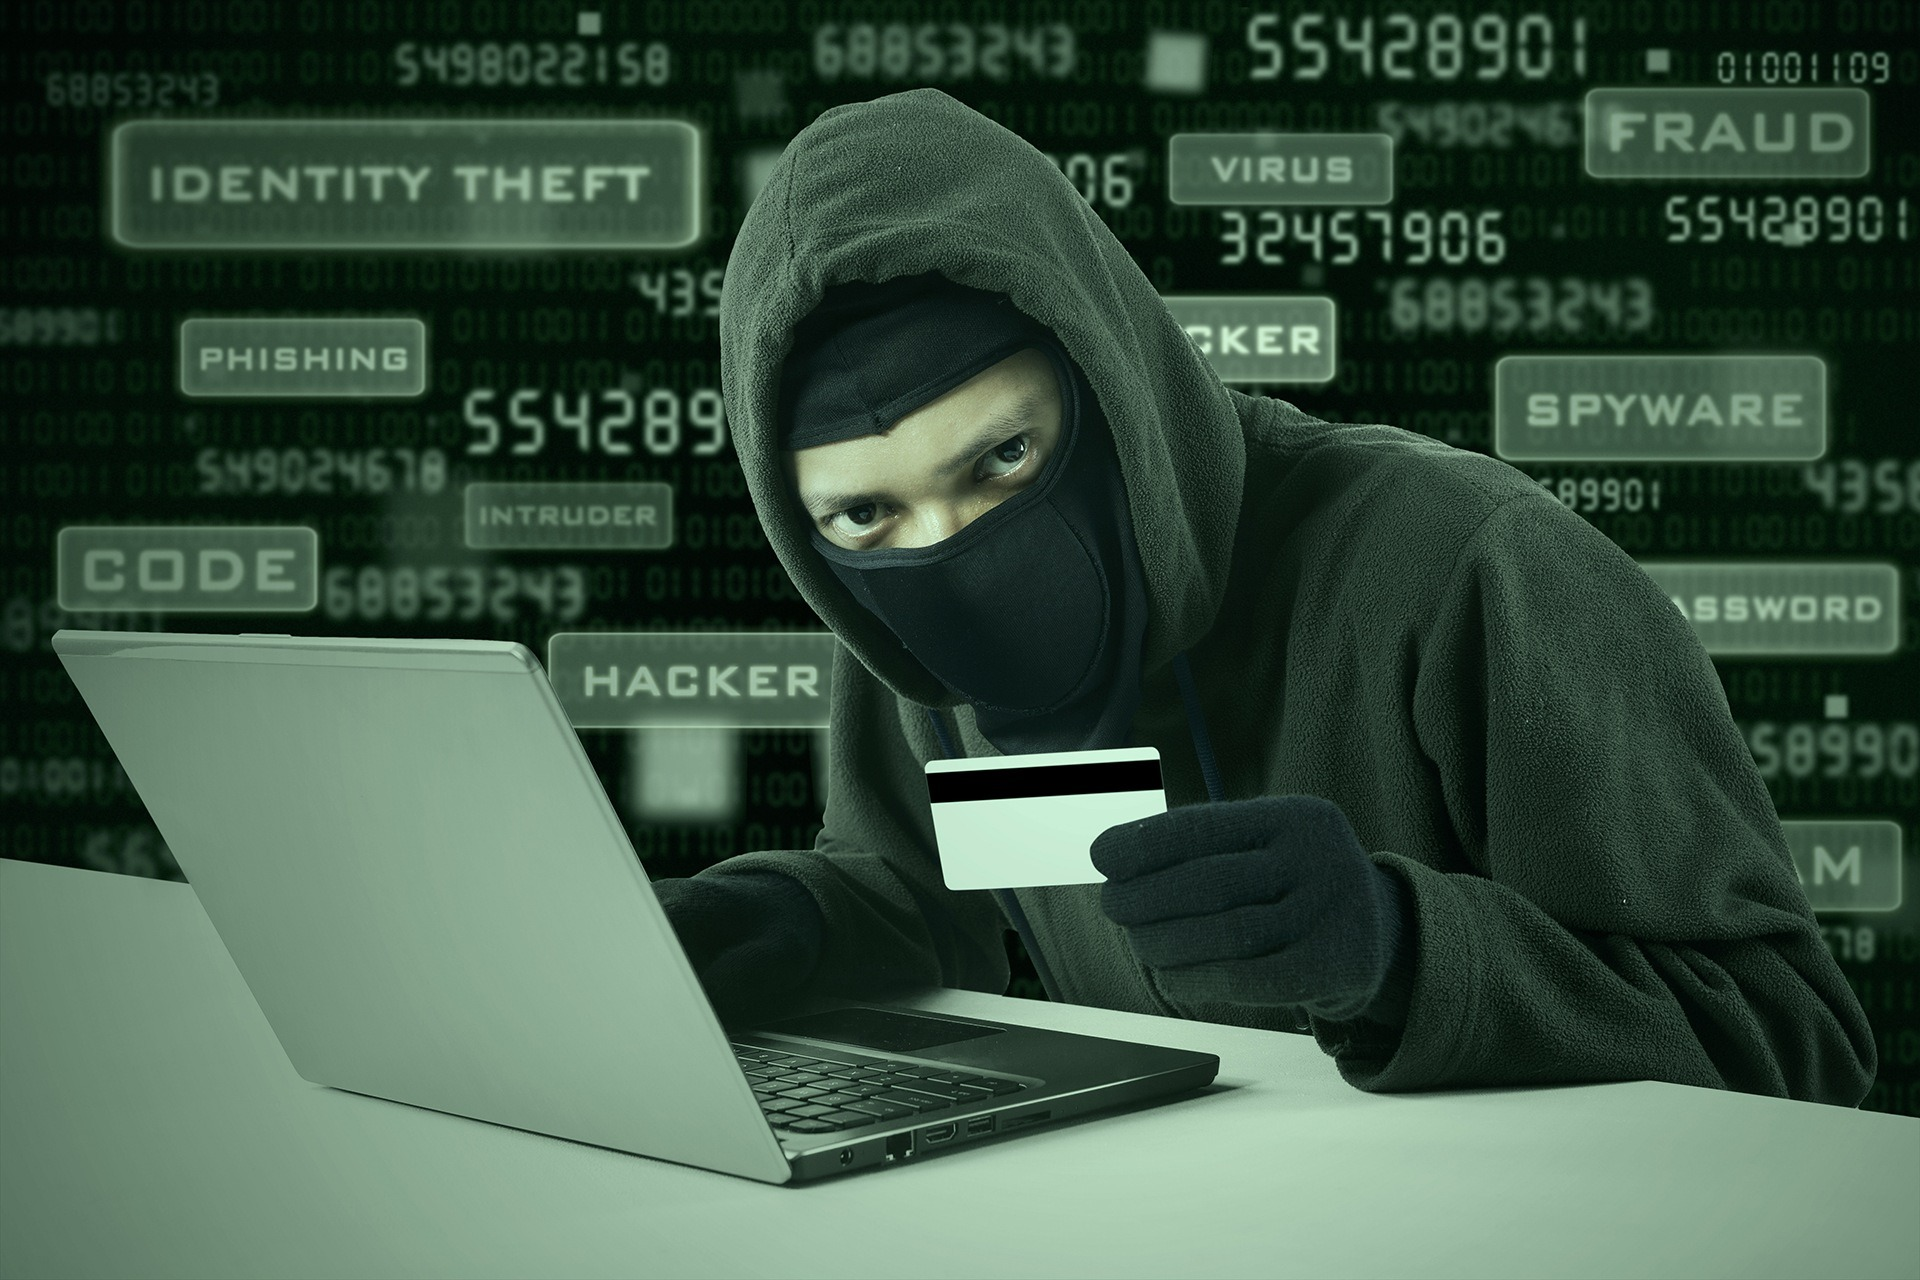 watch out for cyber attacks this holiday season